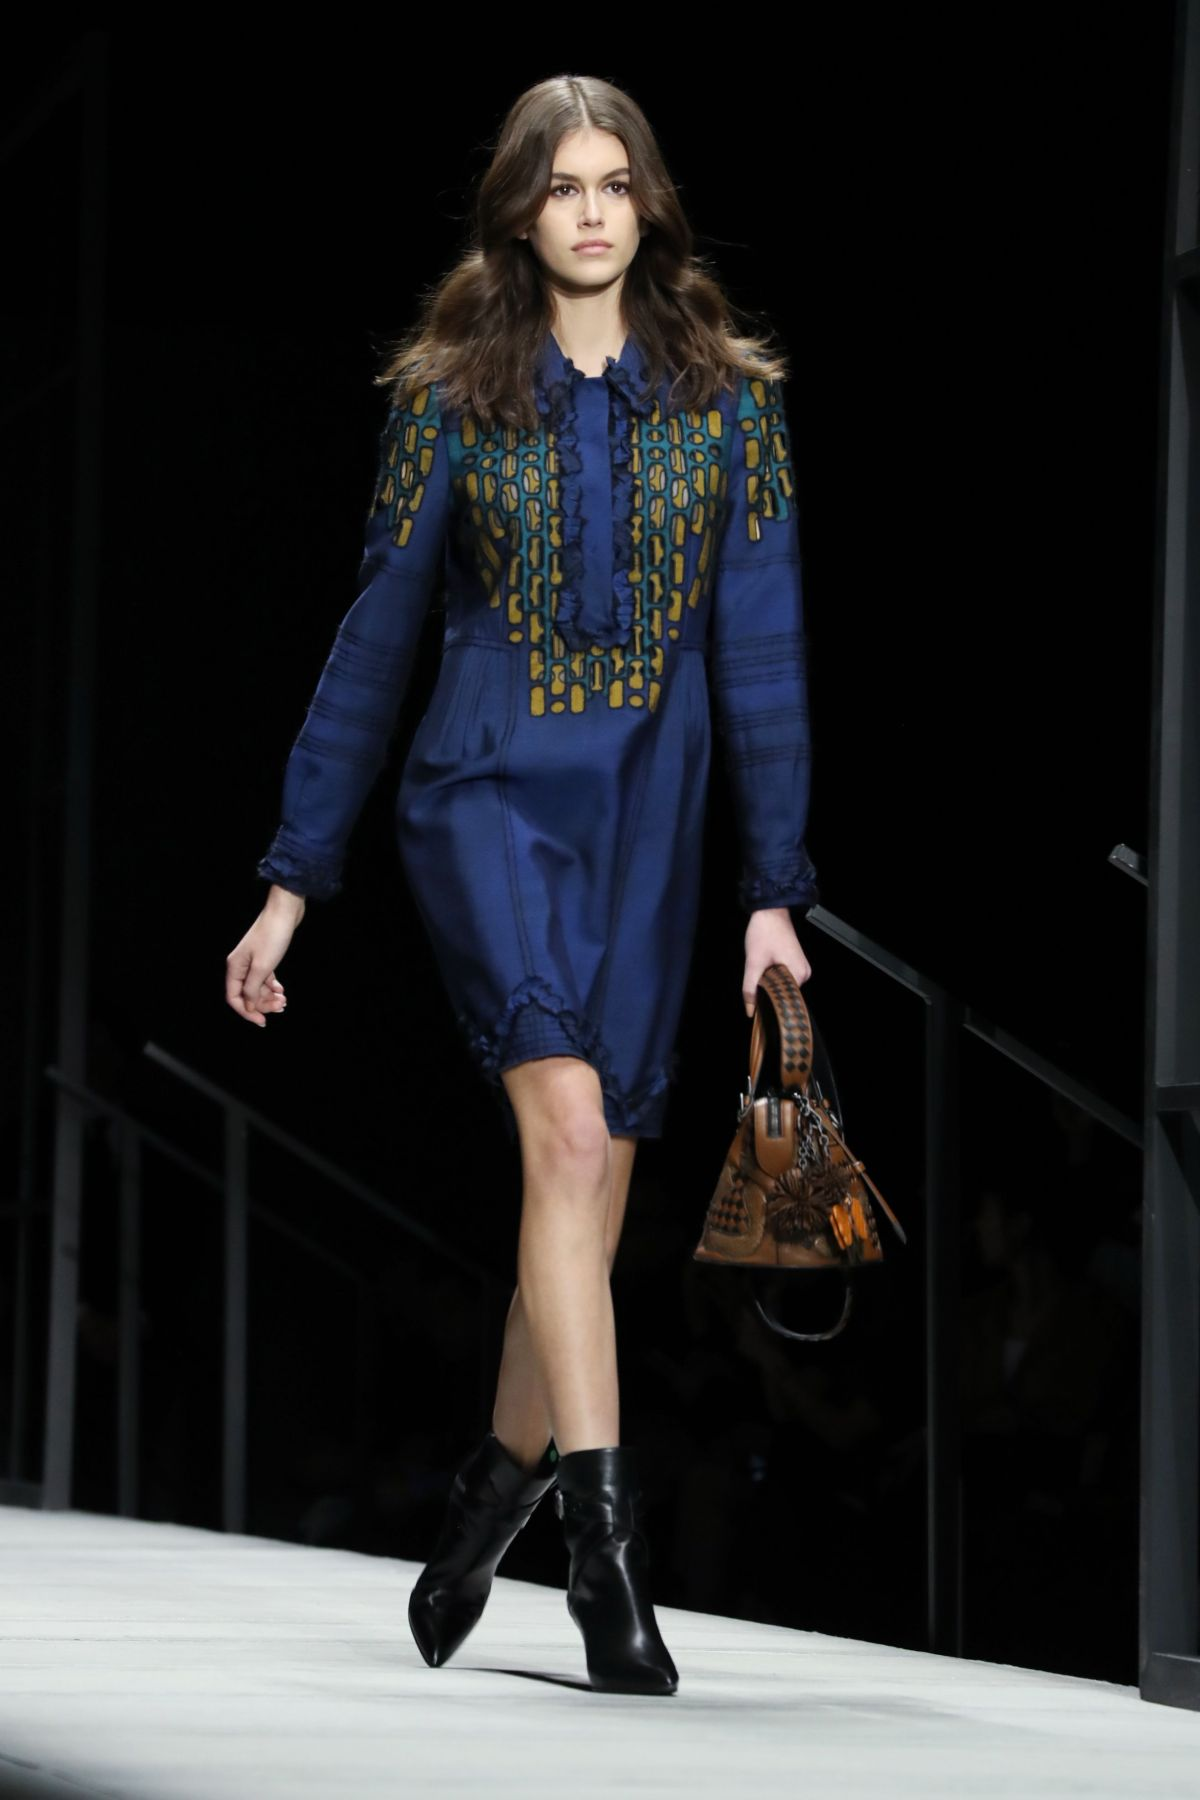 KAIA GERBER At Bottega Veneta Catwalk At New York Fashion